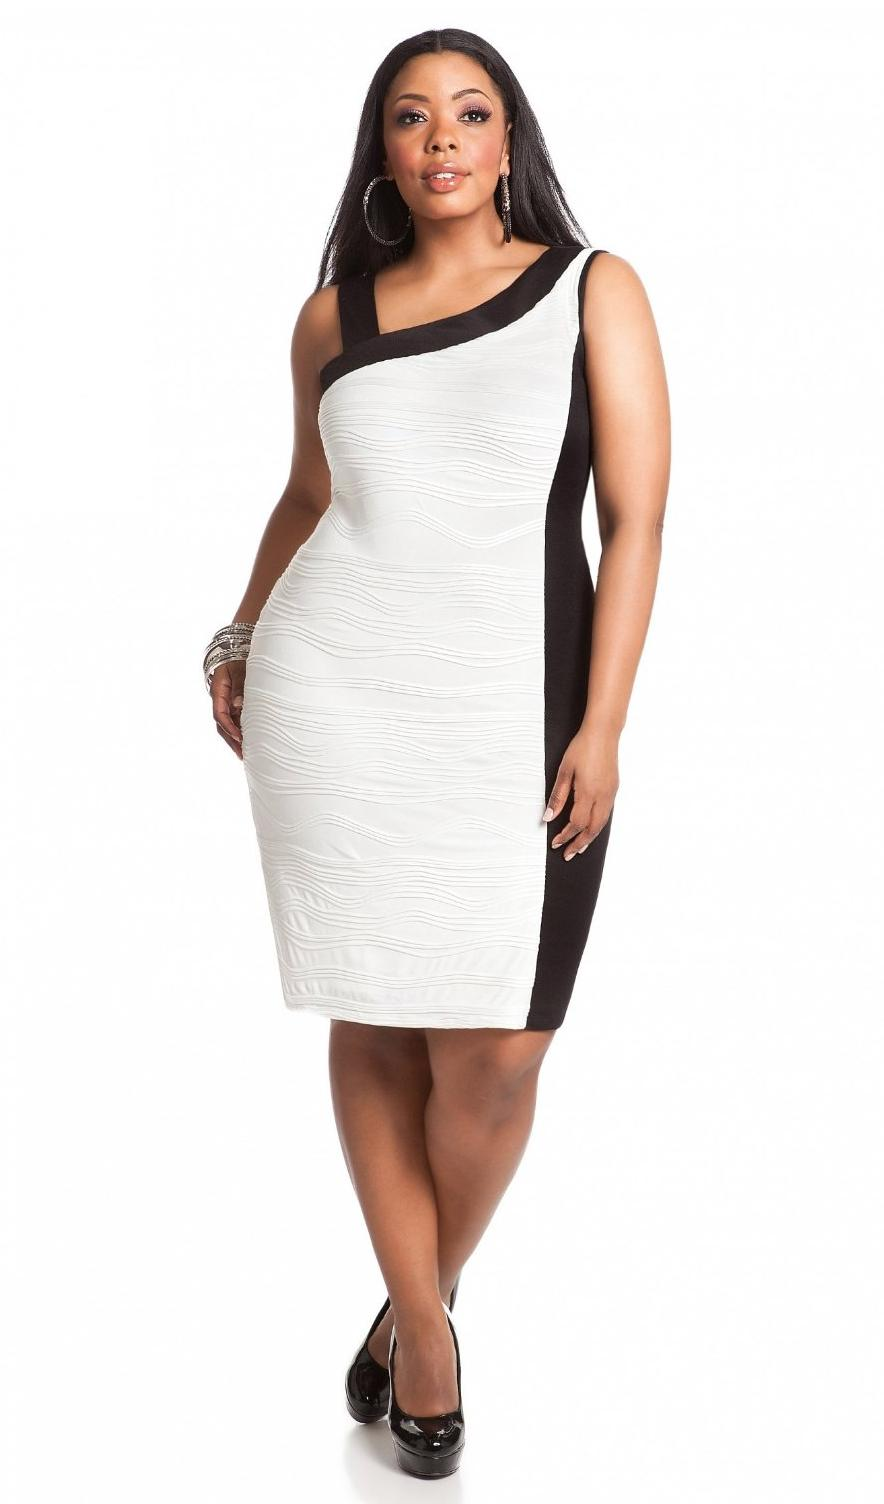 j team plus size dresses